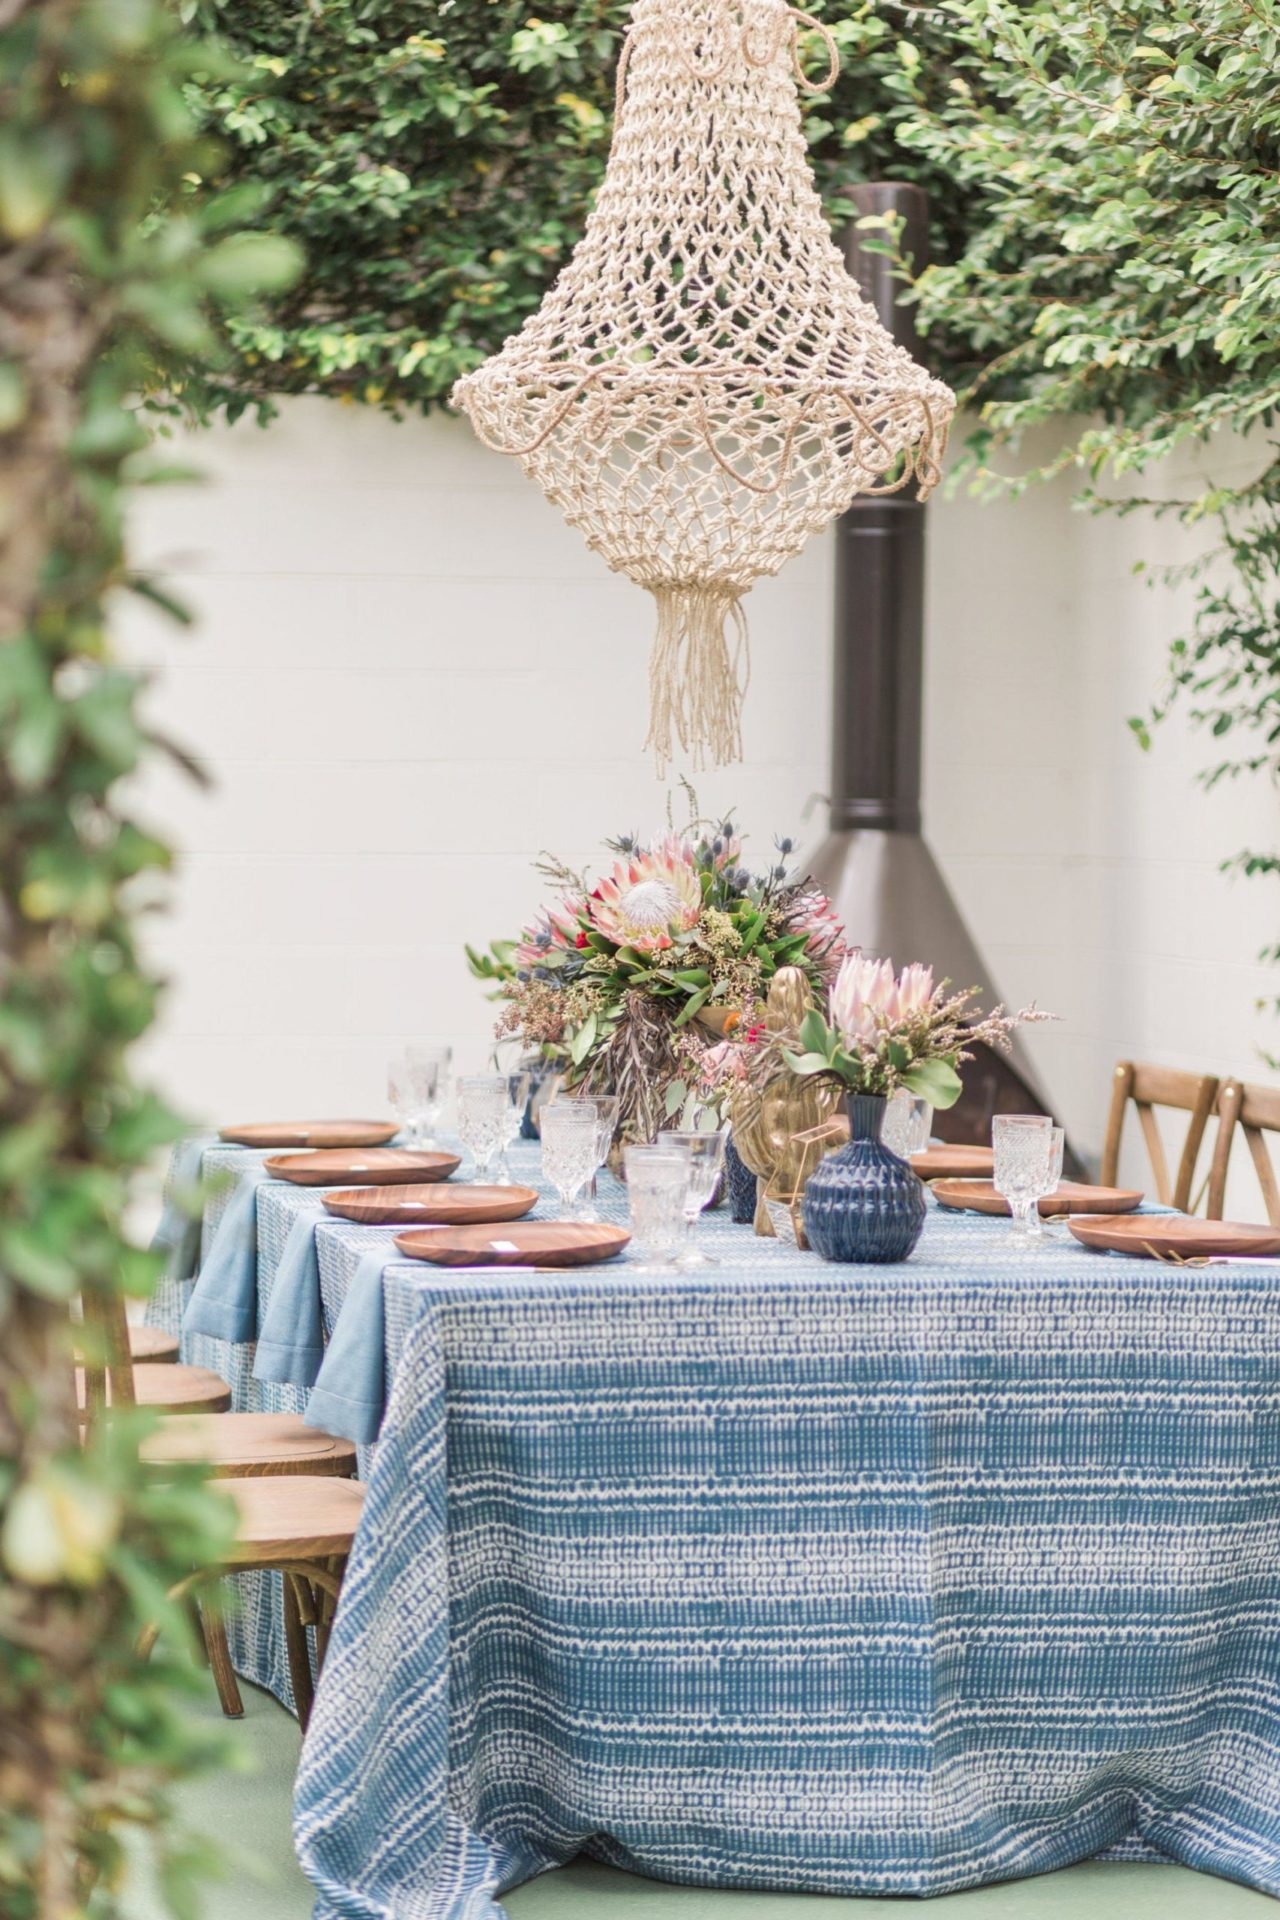 Blue Indigo Inspired Garden Dinner Party Table Setting Side View